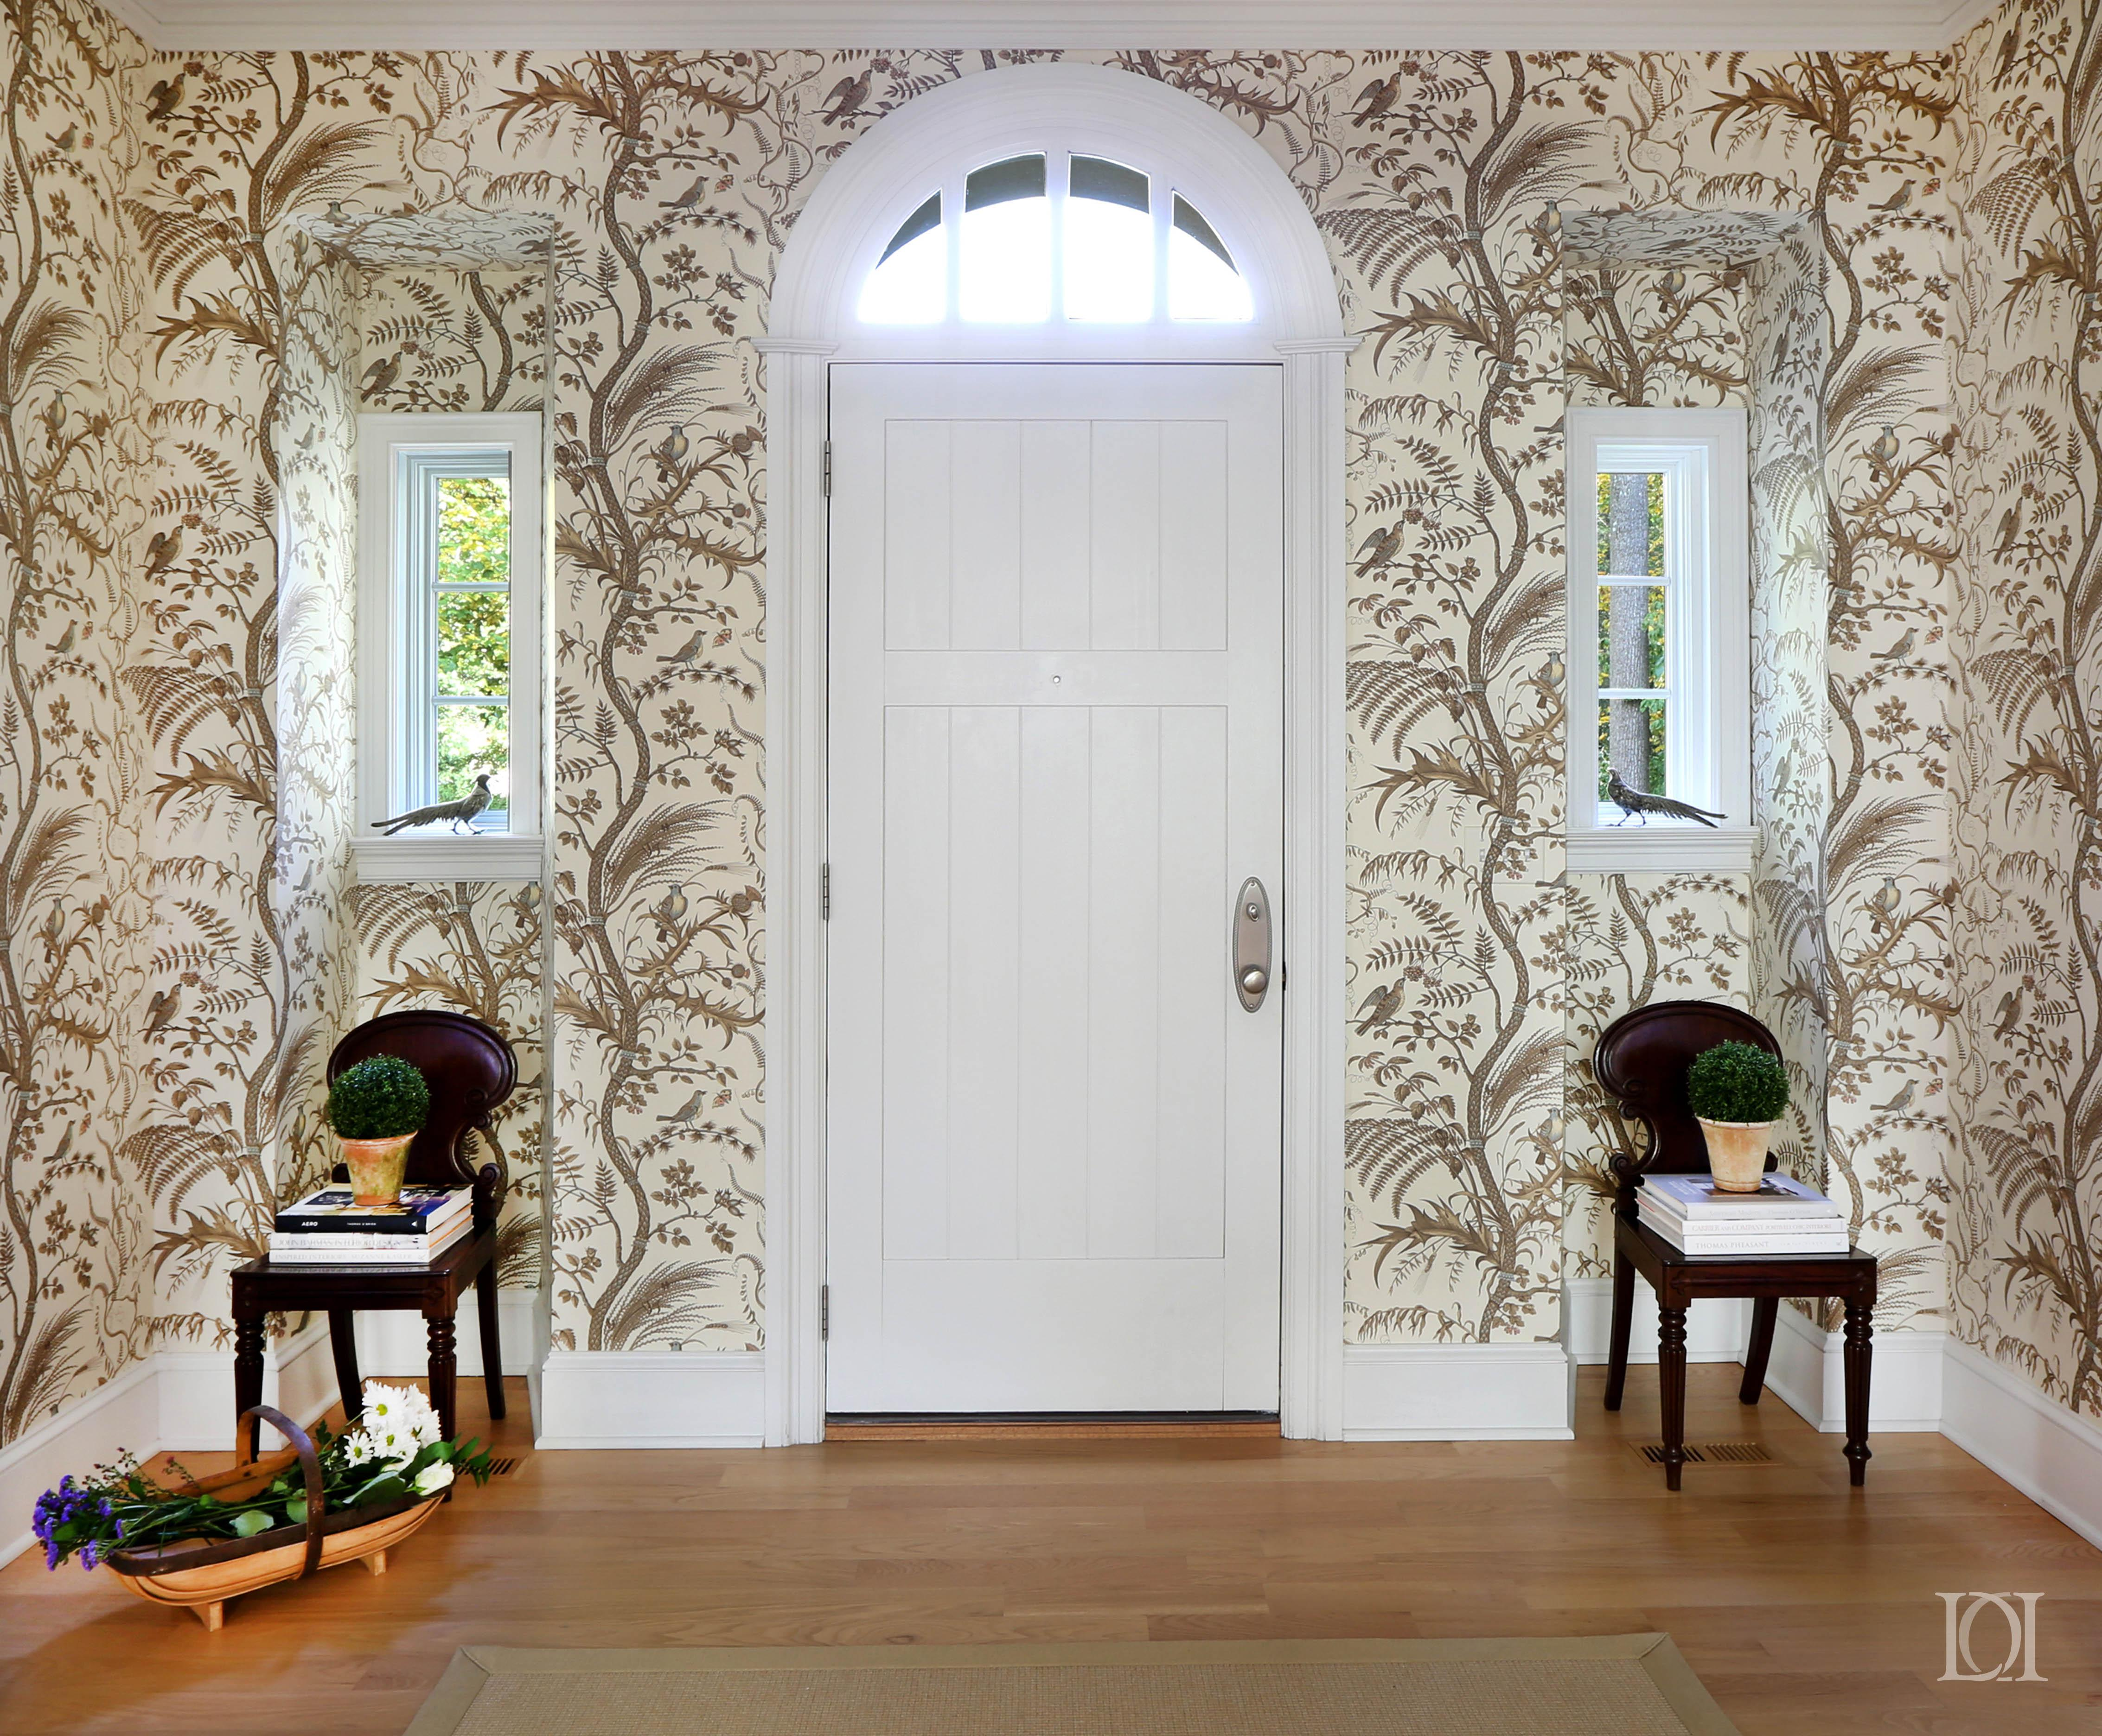 Foyer Wallpaper : Cradle rock entry foyer arched windows and antique hall chairs